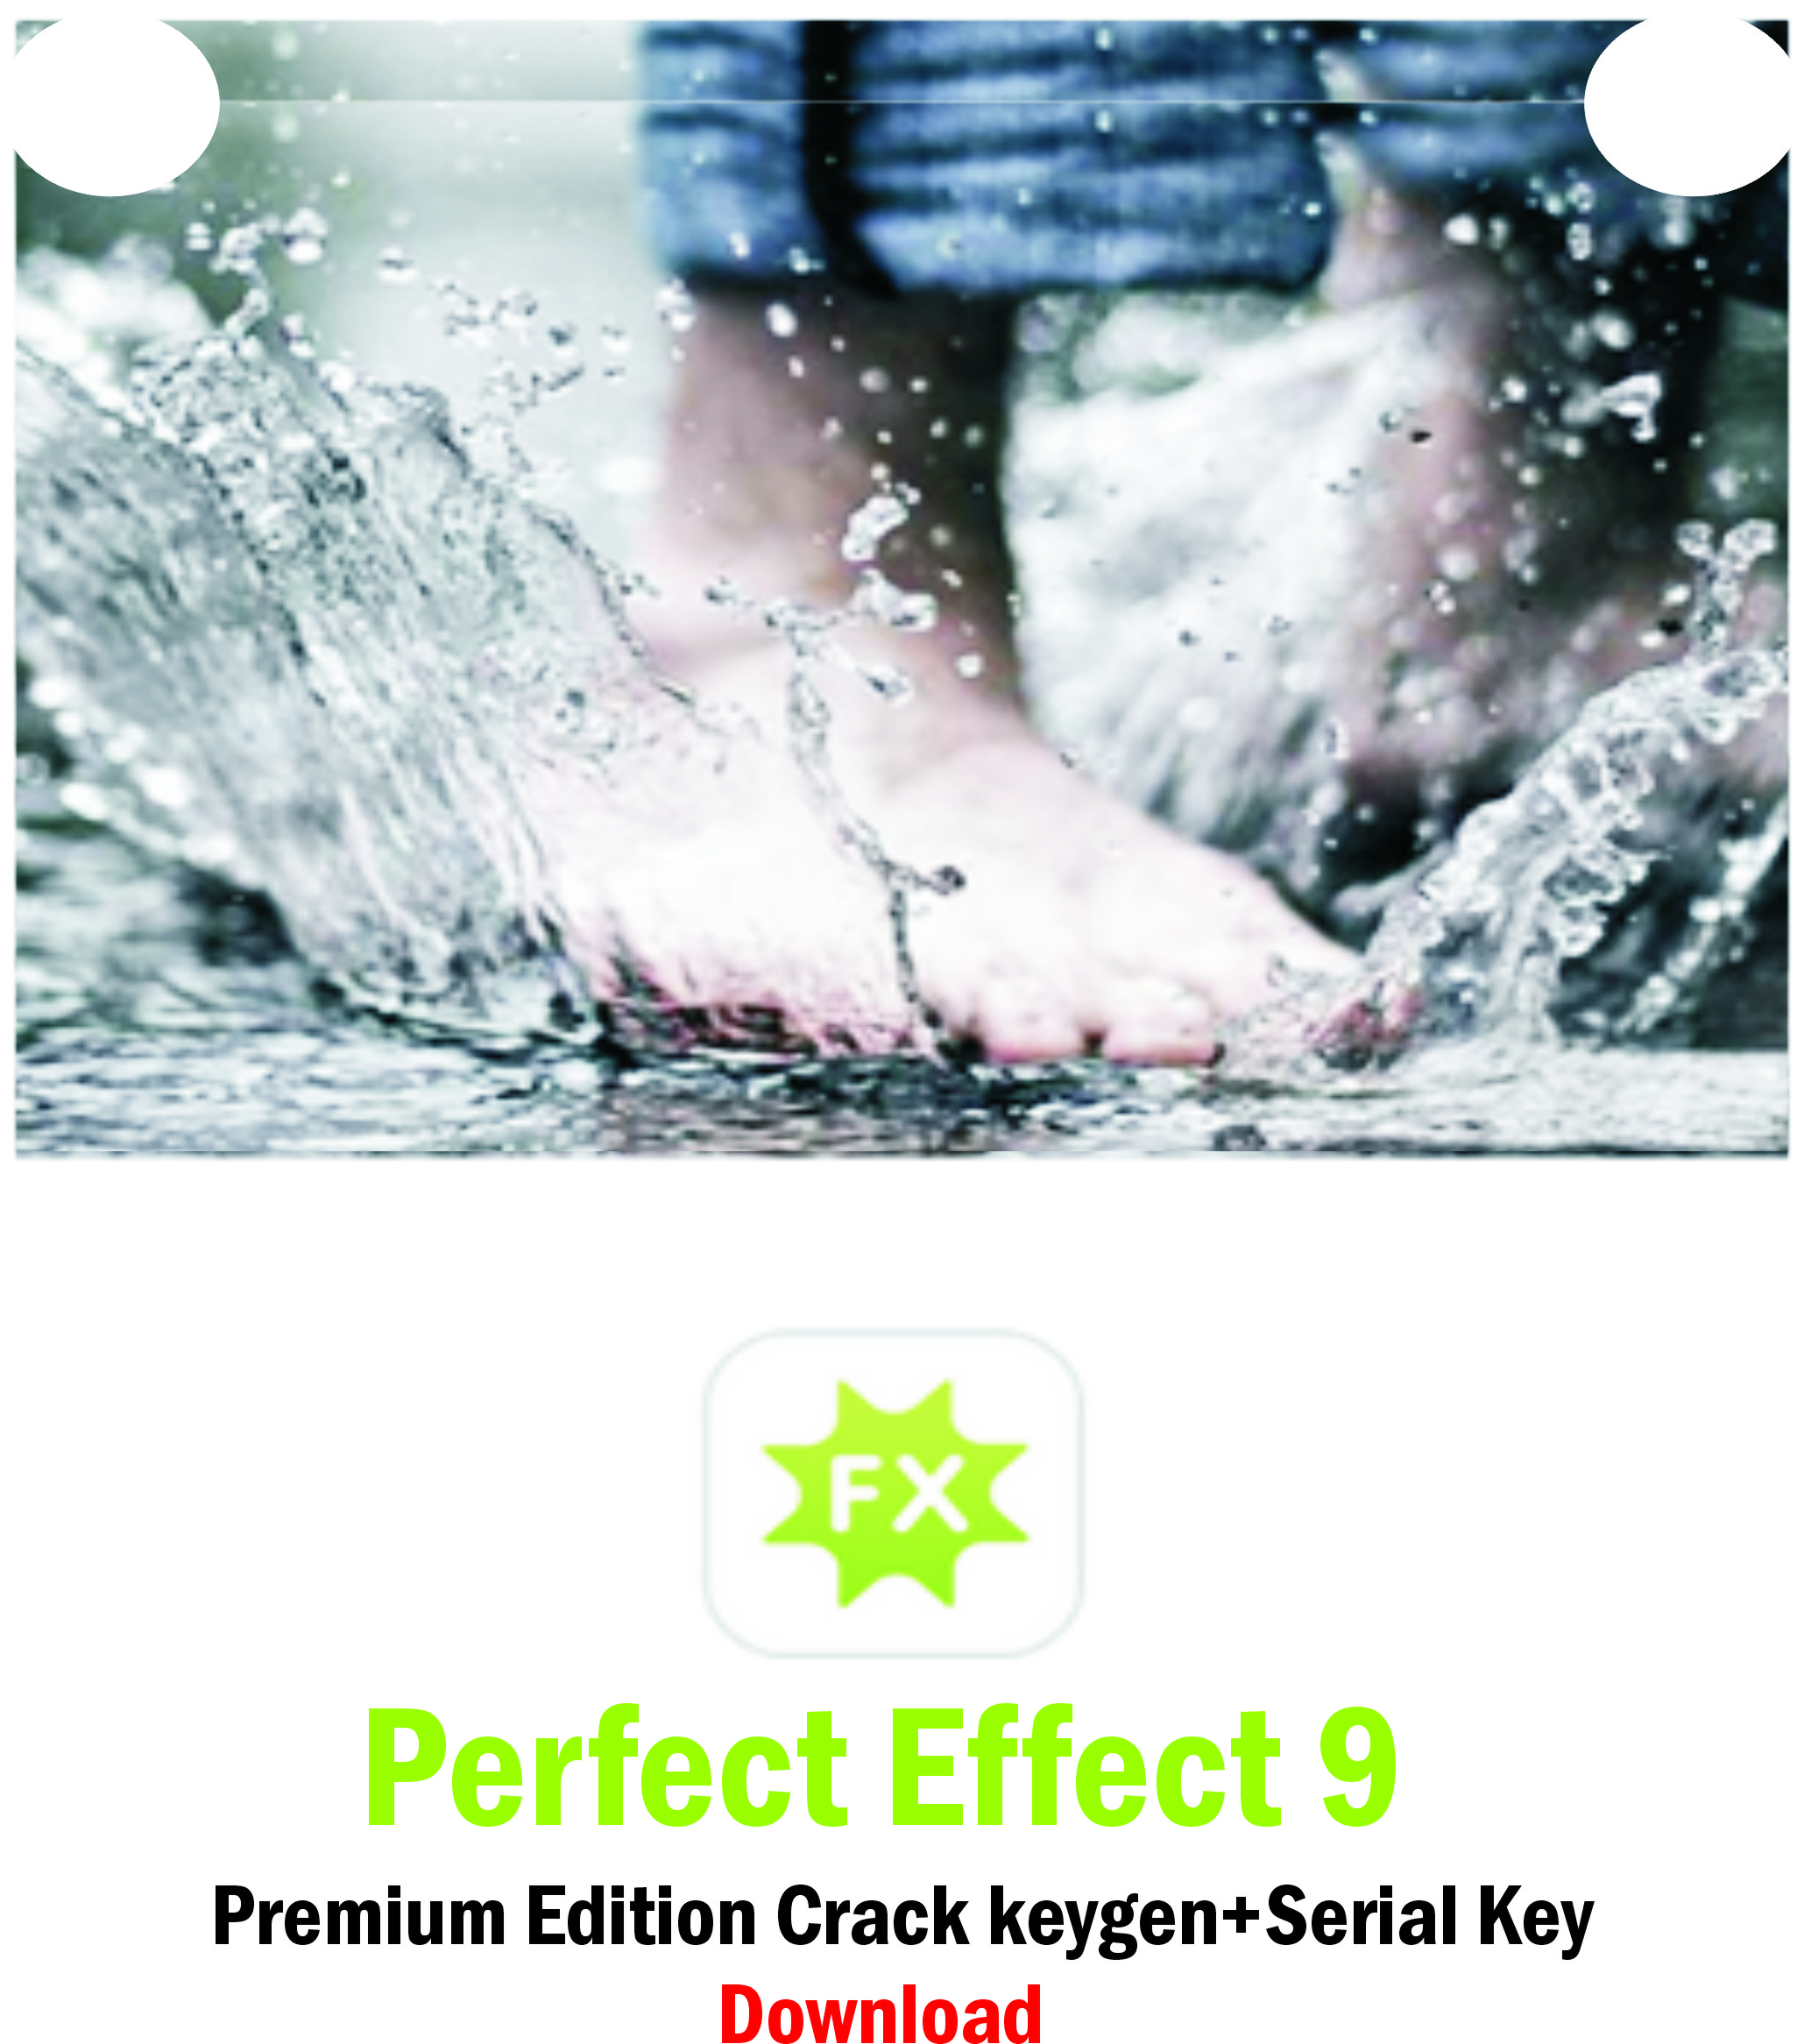 Perfect Effect 9 Premium Edition Crack keygen+Serial Key Download